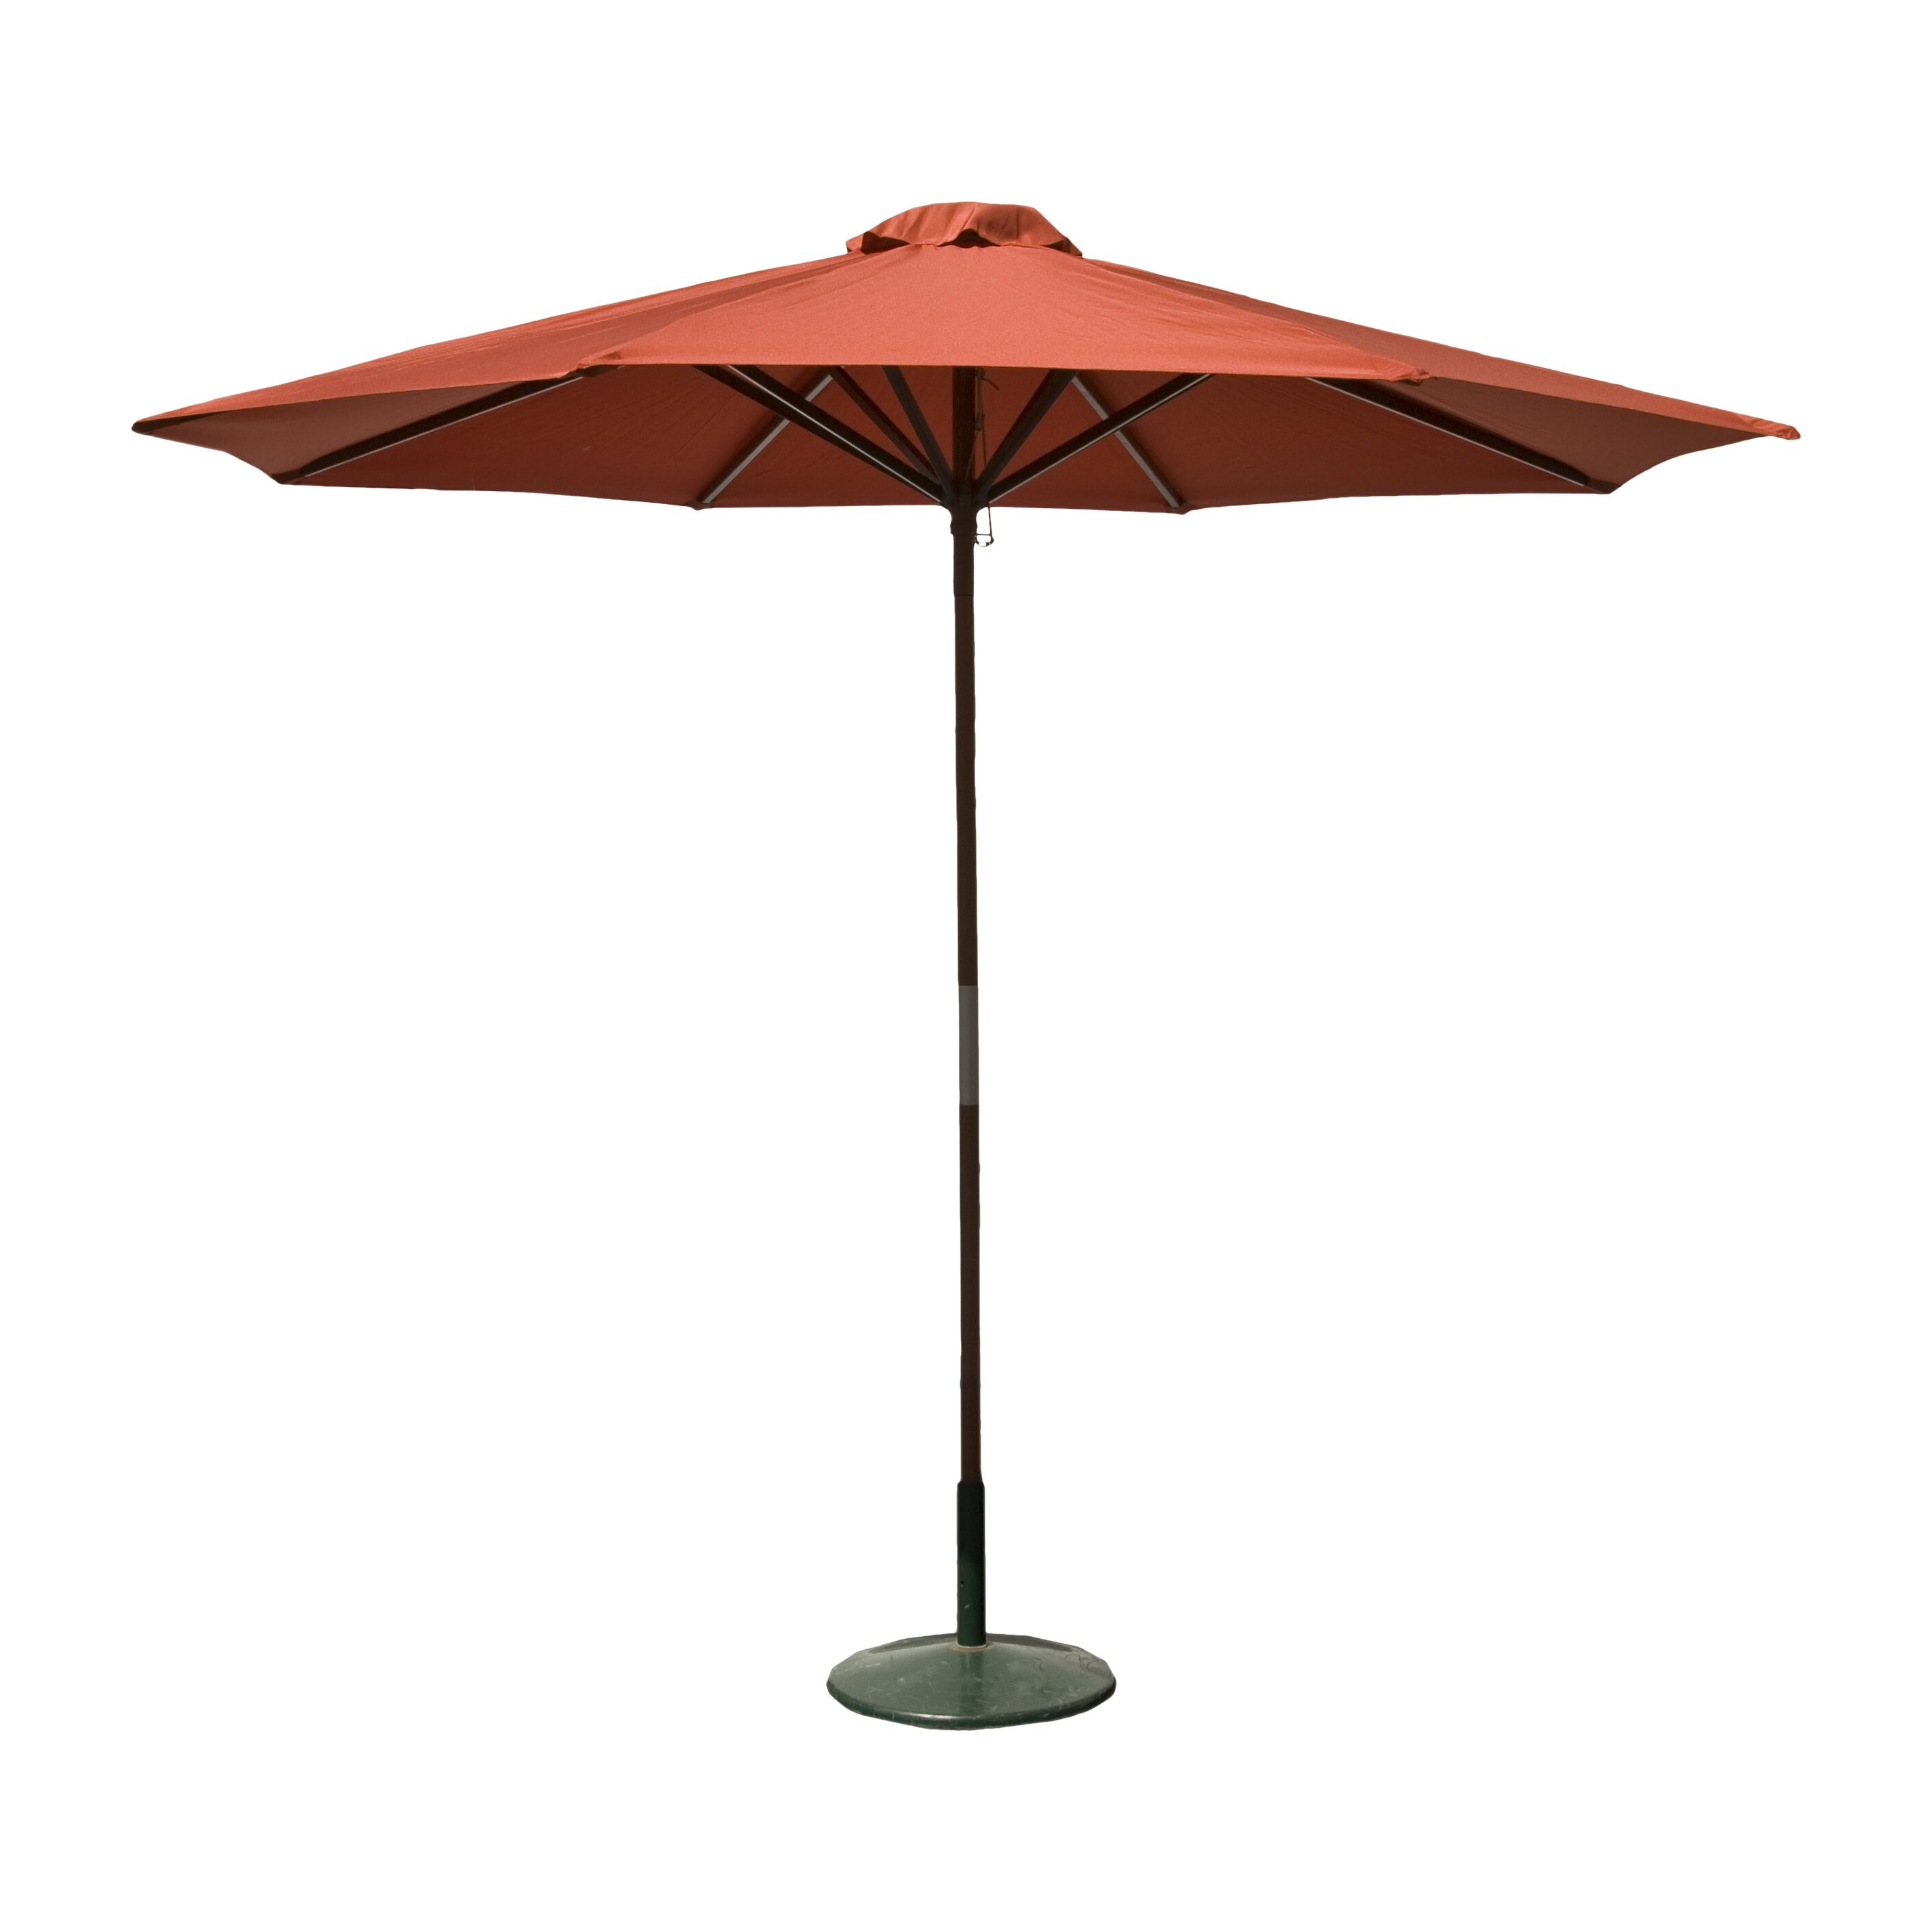 Patio umbrella reviews offset patio umbrella reviews for Best outdoor umbrellas reviews